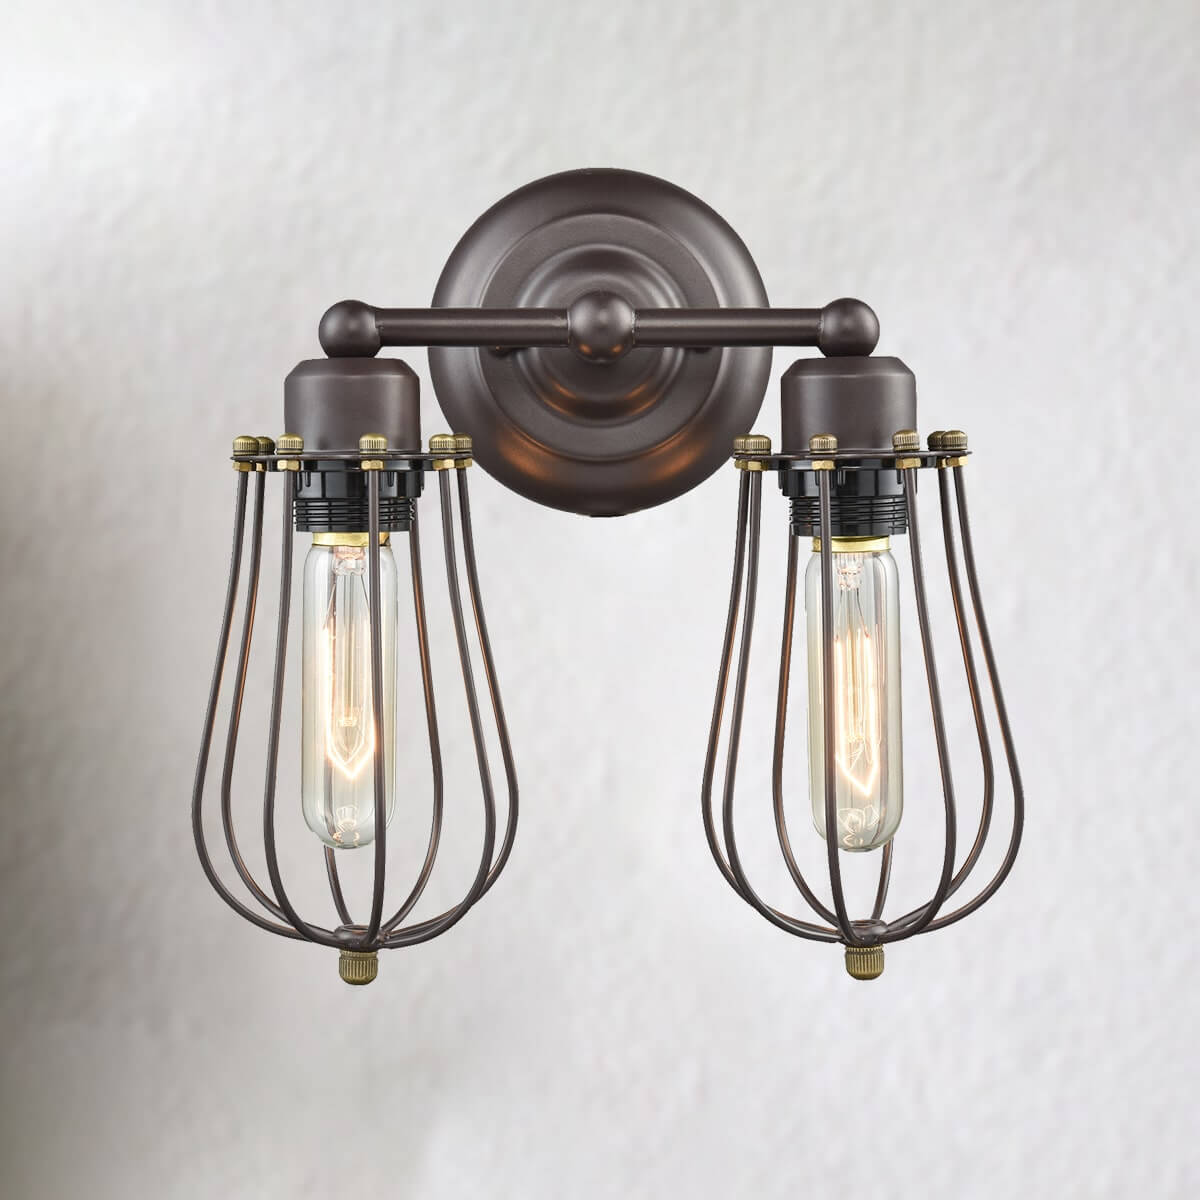 Oil Rubbed Bronze 2-Light Metal Rustic Wall Sconces